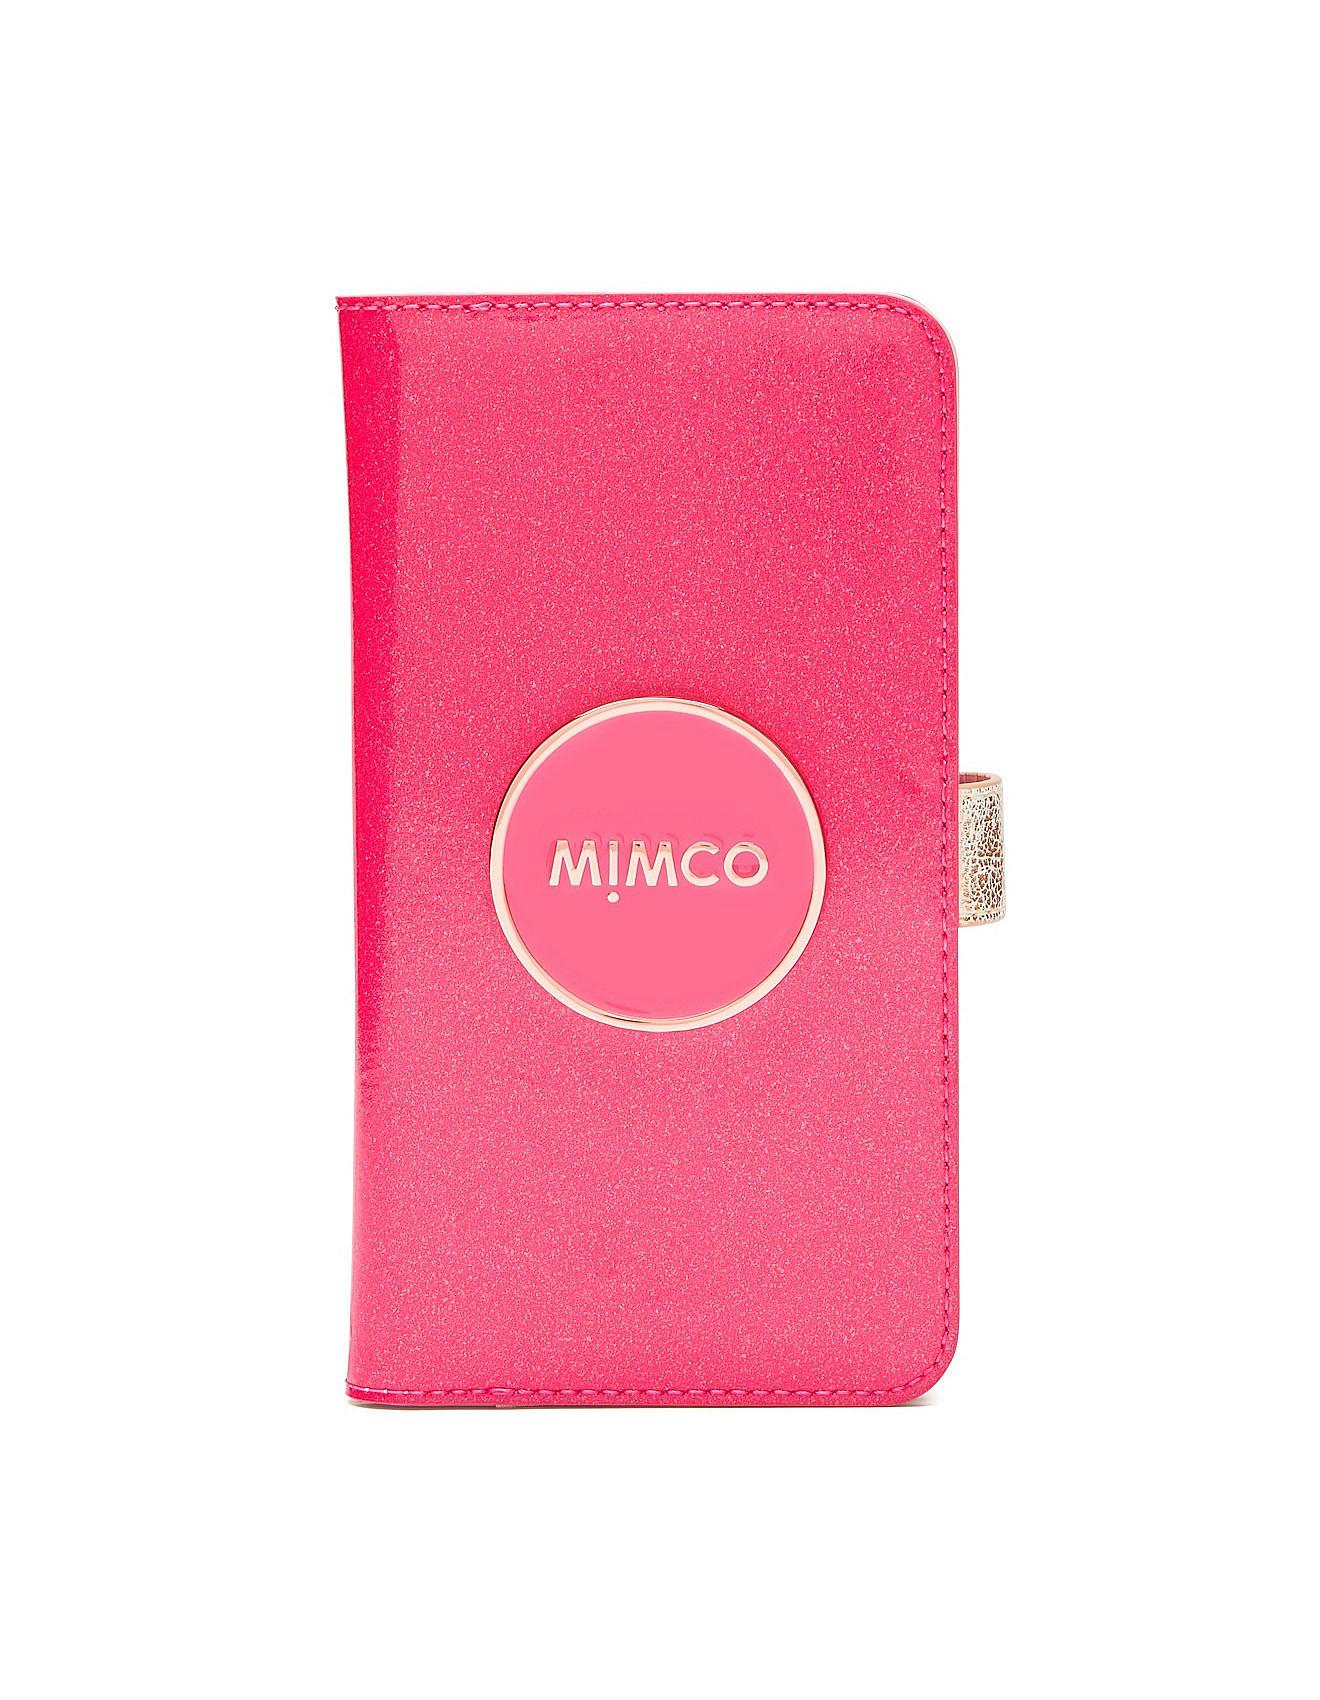 sale retailer 9e399 01ee8 Mimco Pink Shimmer Flip Case For Iphone 6p/7p/8p